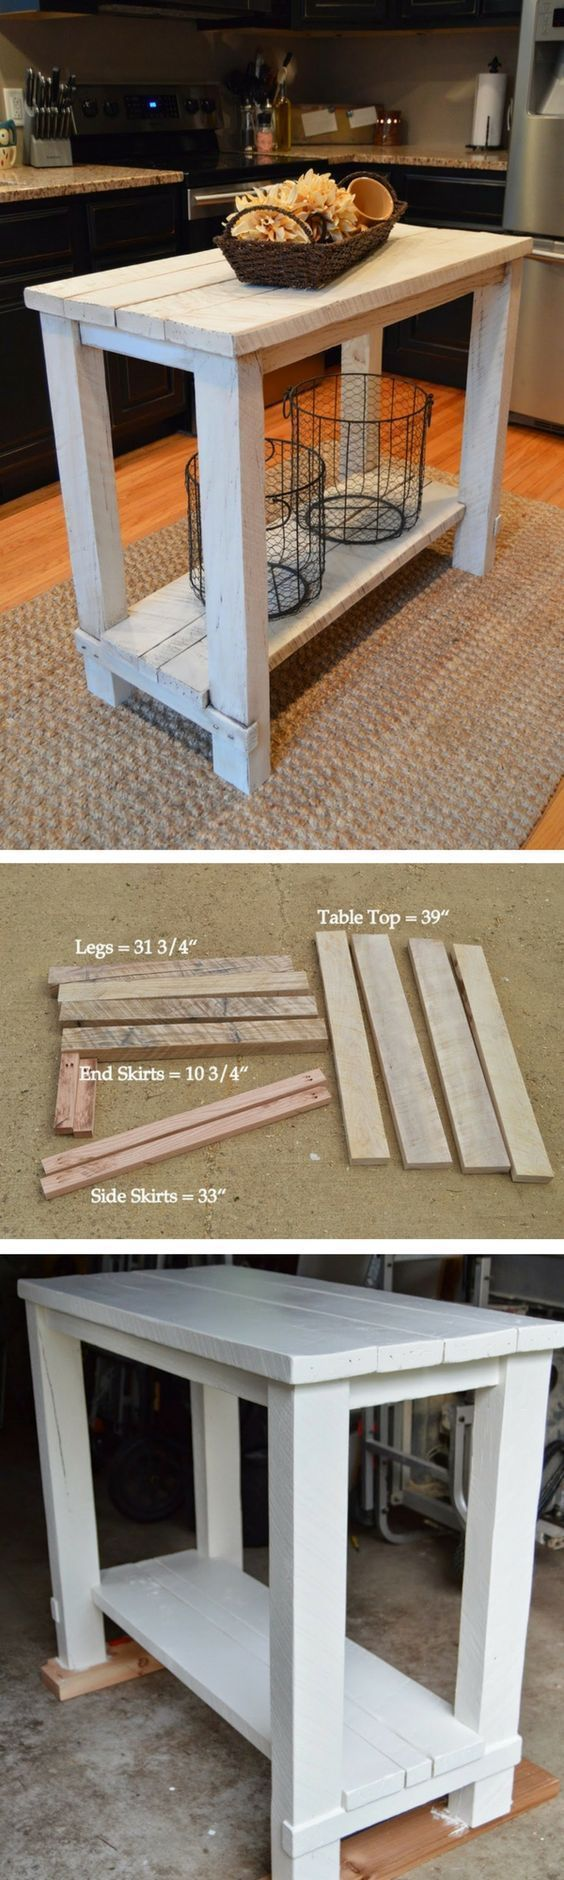 easy diy kitchen islands that you can build on a budget diy